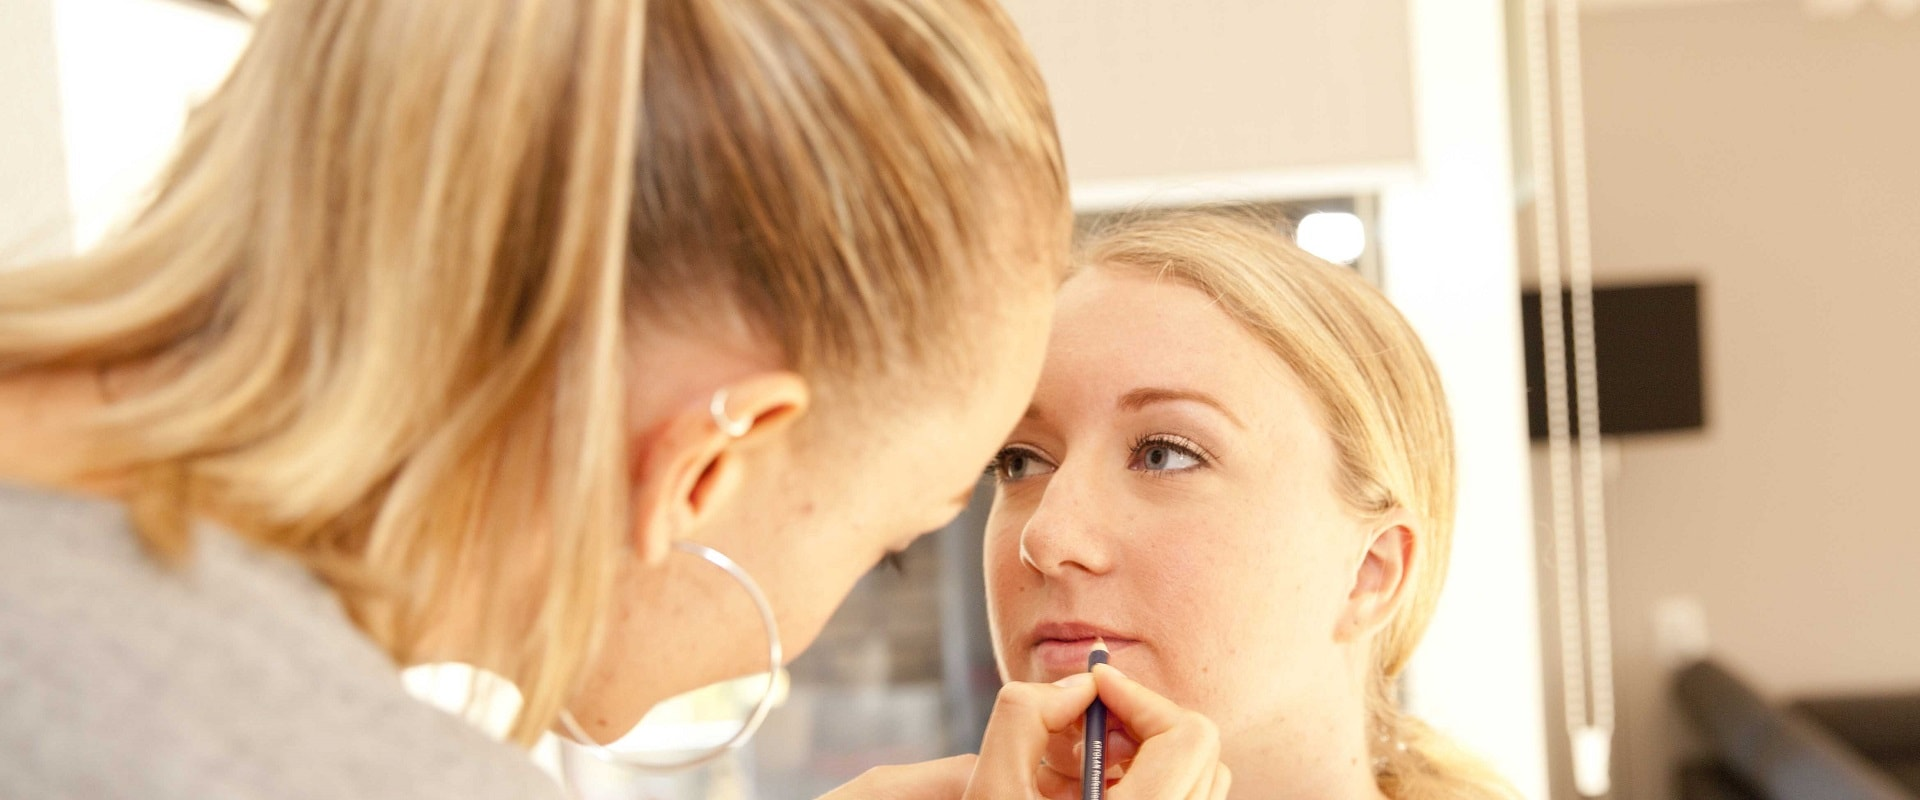 Make-up artist in Eindhoven | Annemieke Vreugdenhil